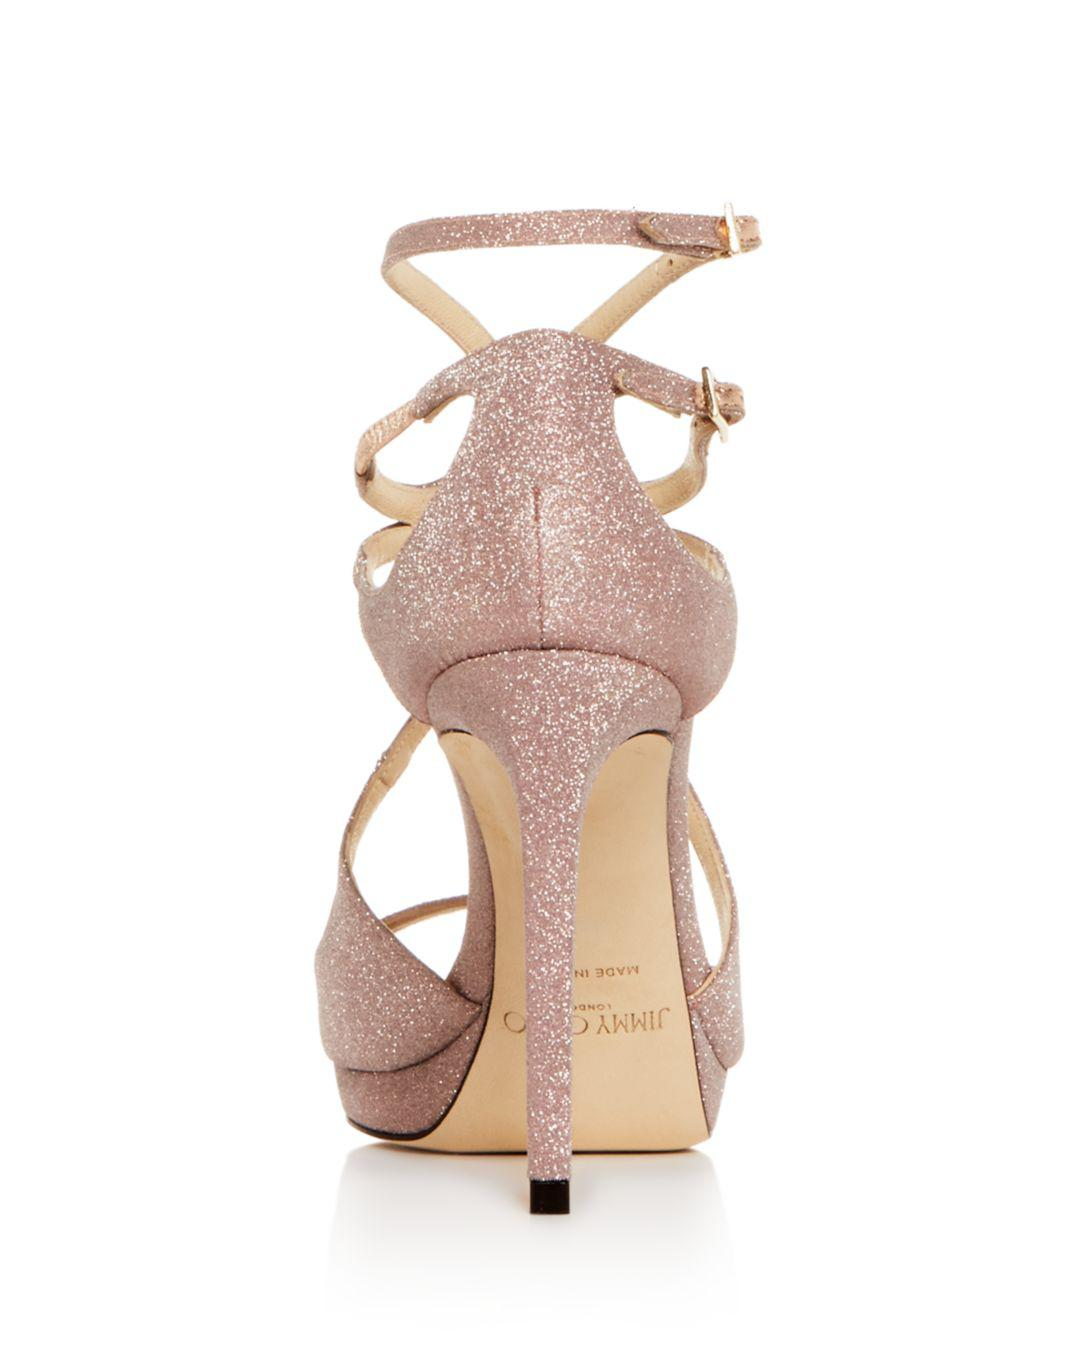 66493601e6f7 Jimmy Choo - Pink Metallic Slingback Sandals - Lyst. View fullscreen